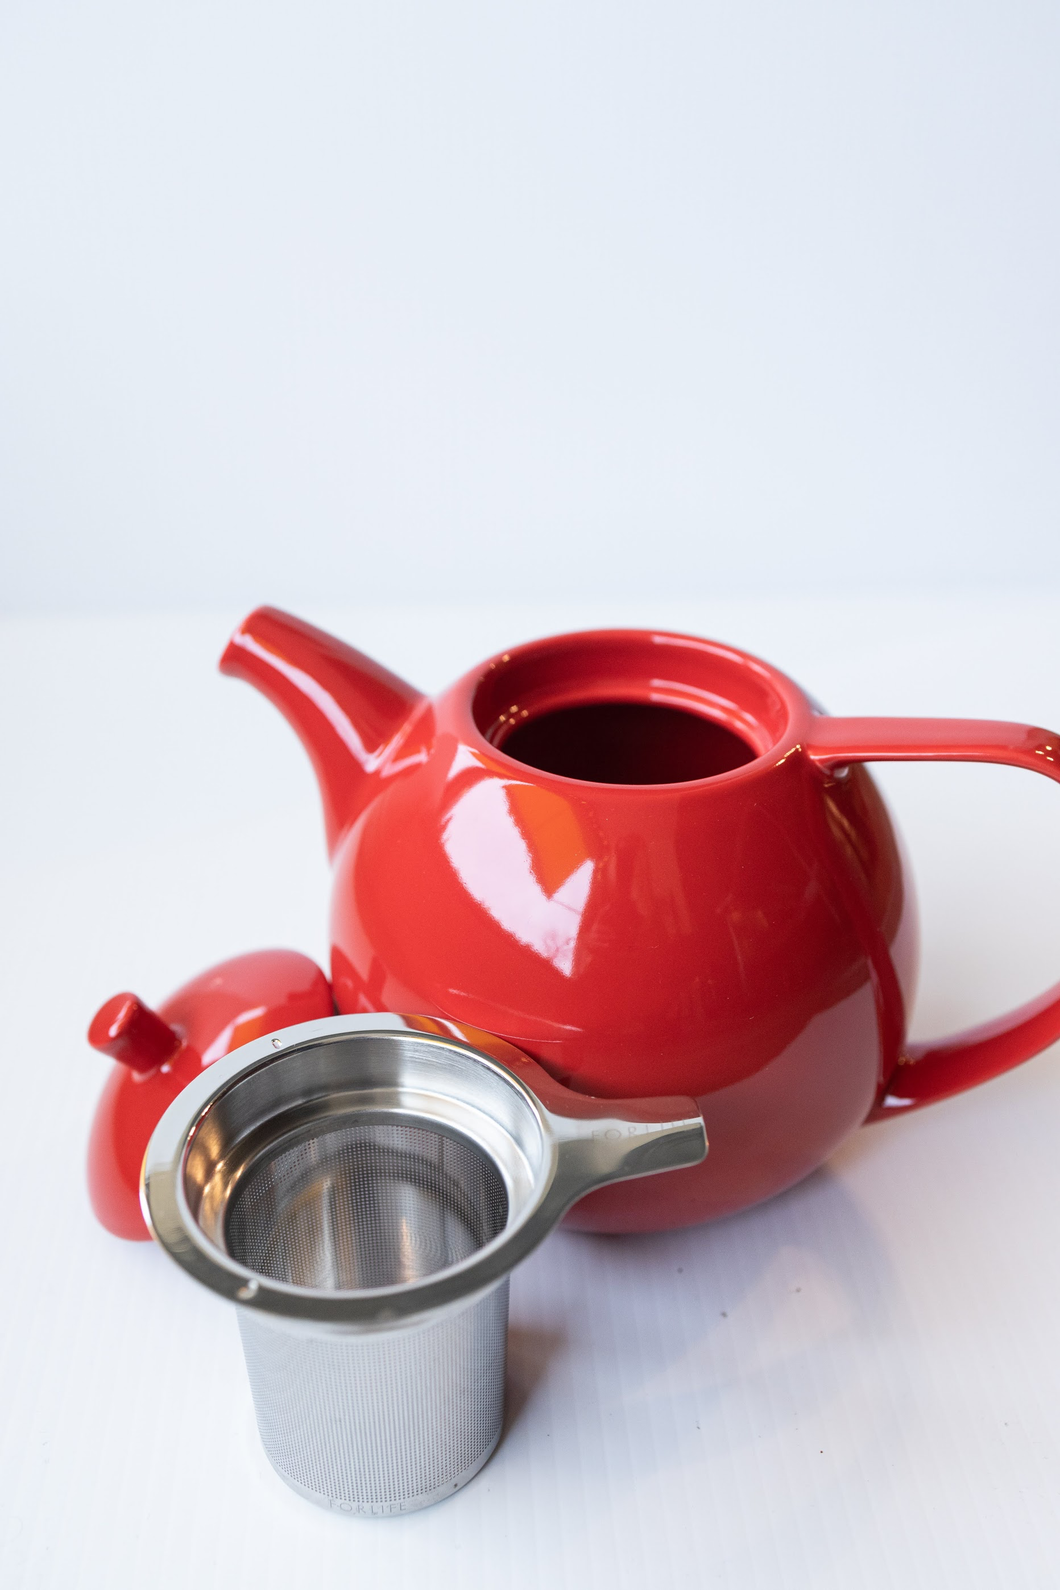 FORLIFE Curve Teapot (Red) 1325mL